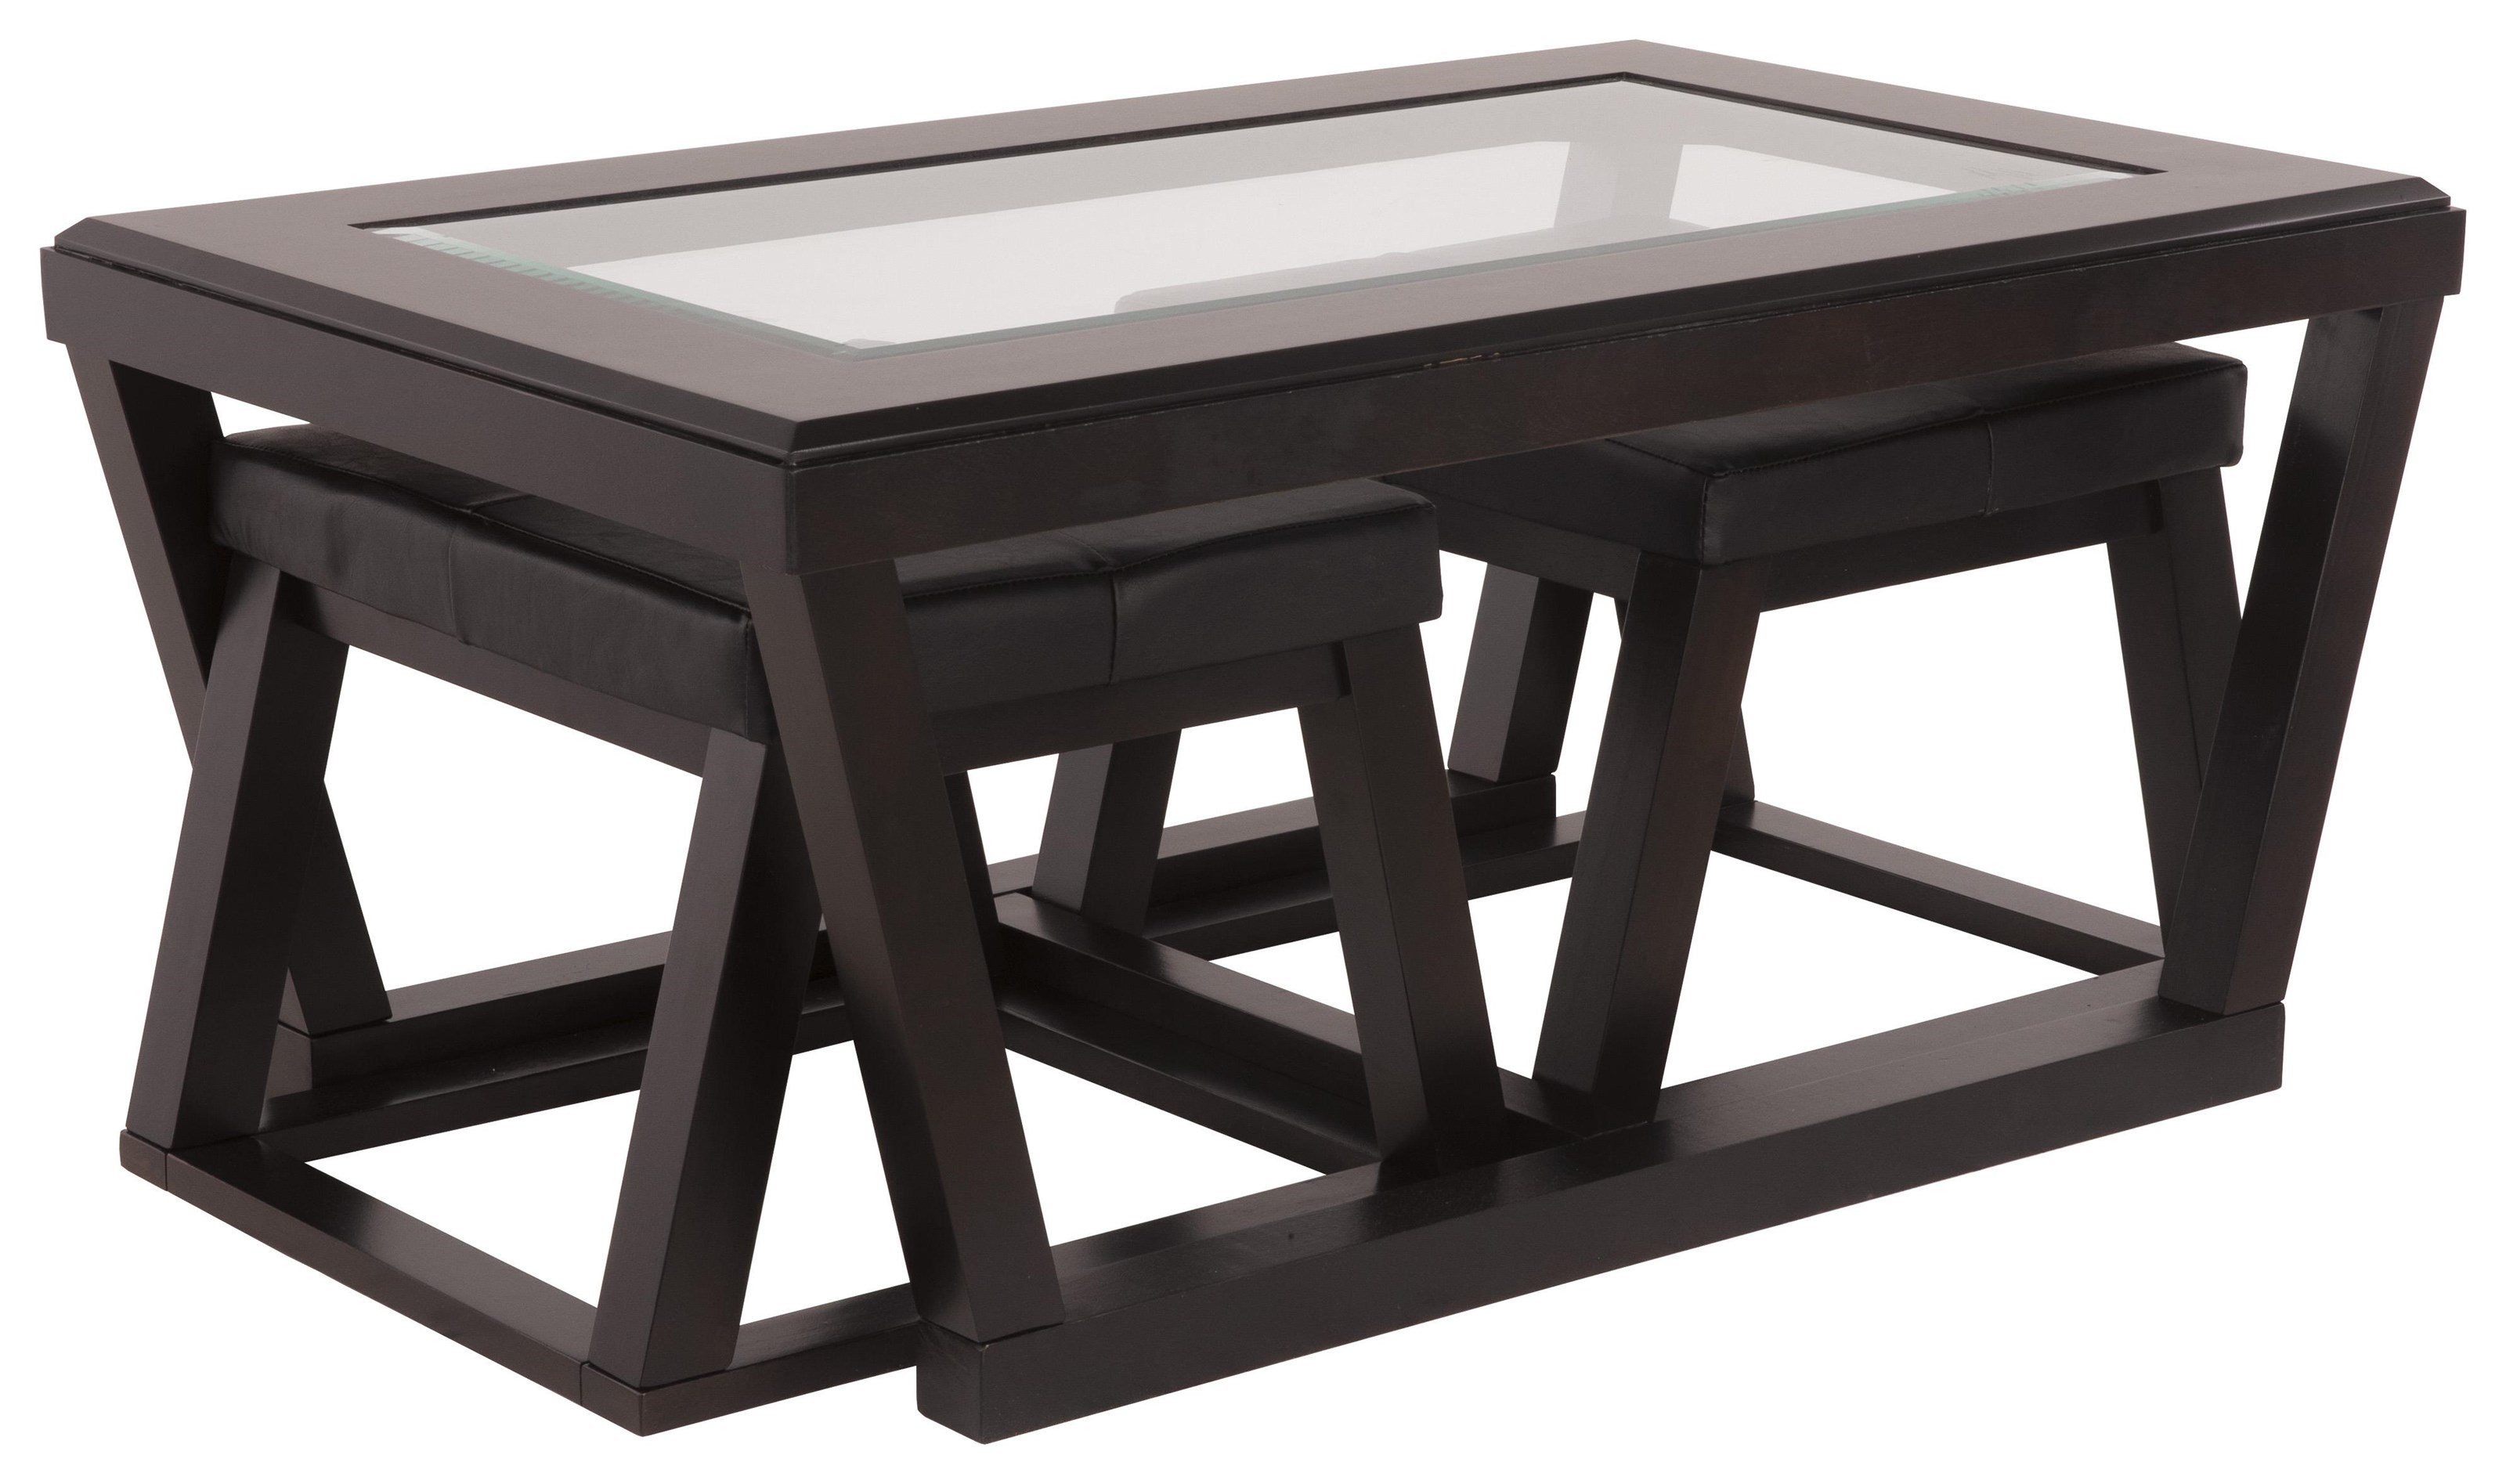 Kelton Cocktail Table with 2 Ottomans by Signature Design by Ashley at HomeWorld Furniture